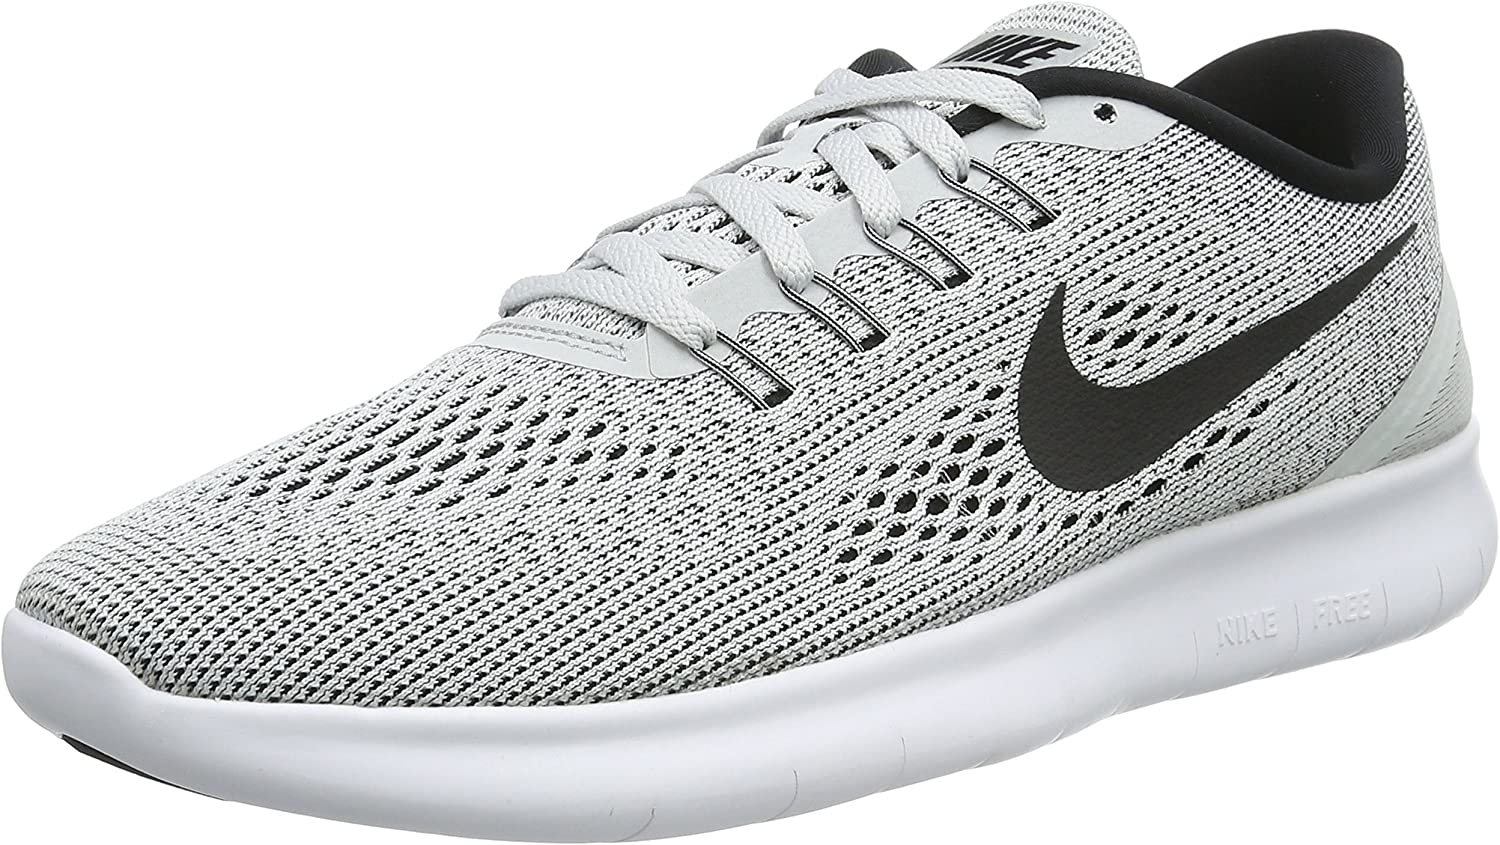 Nike Men S Free Rn Running Shoes Road Running